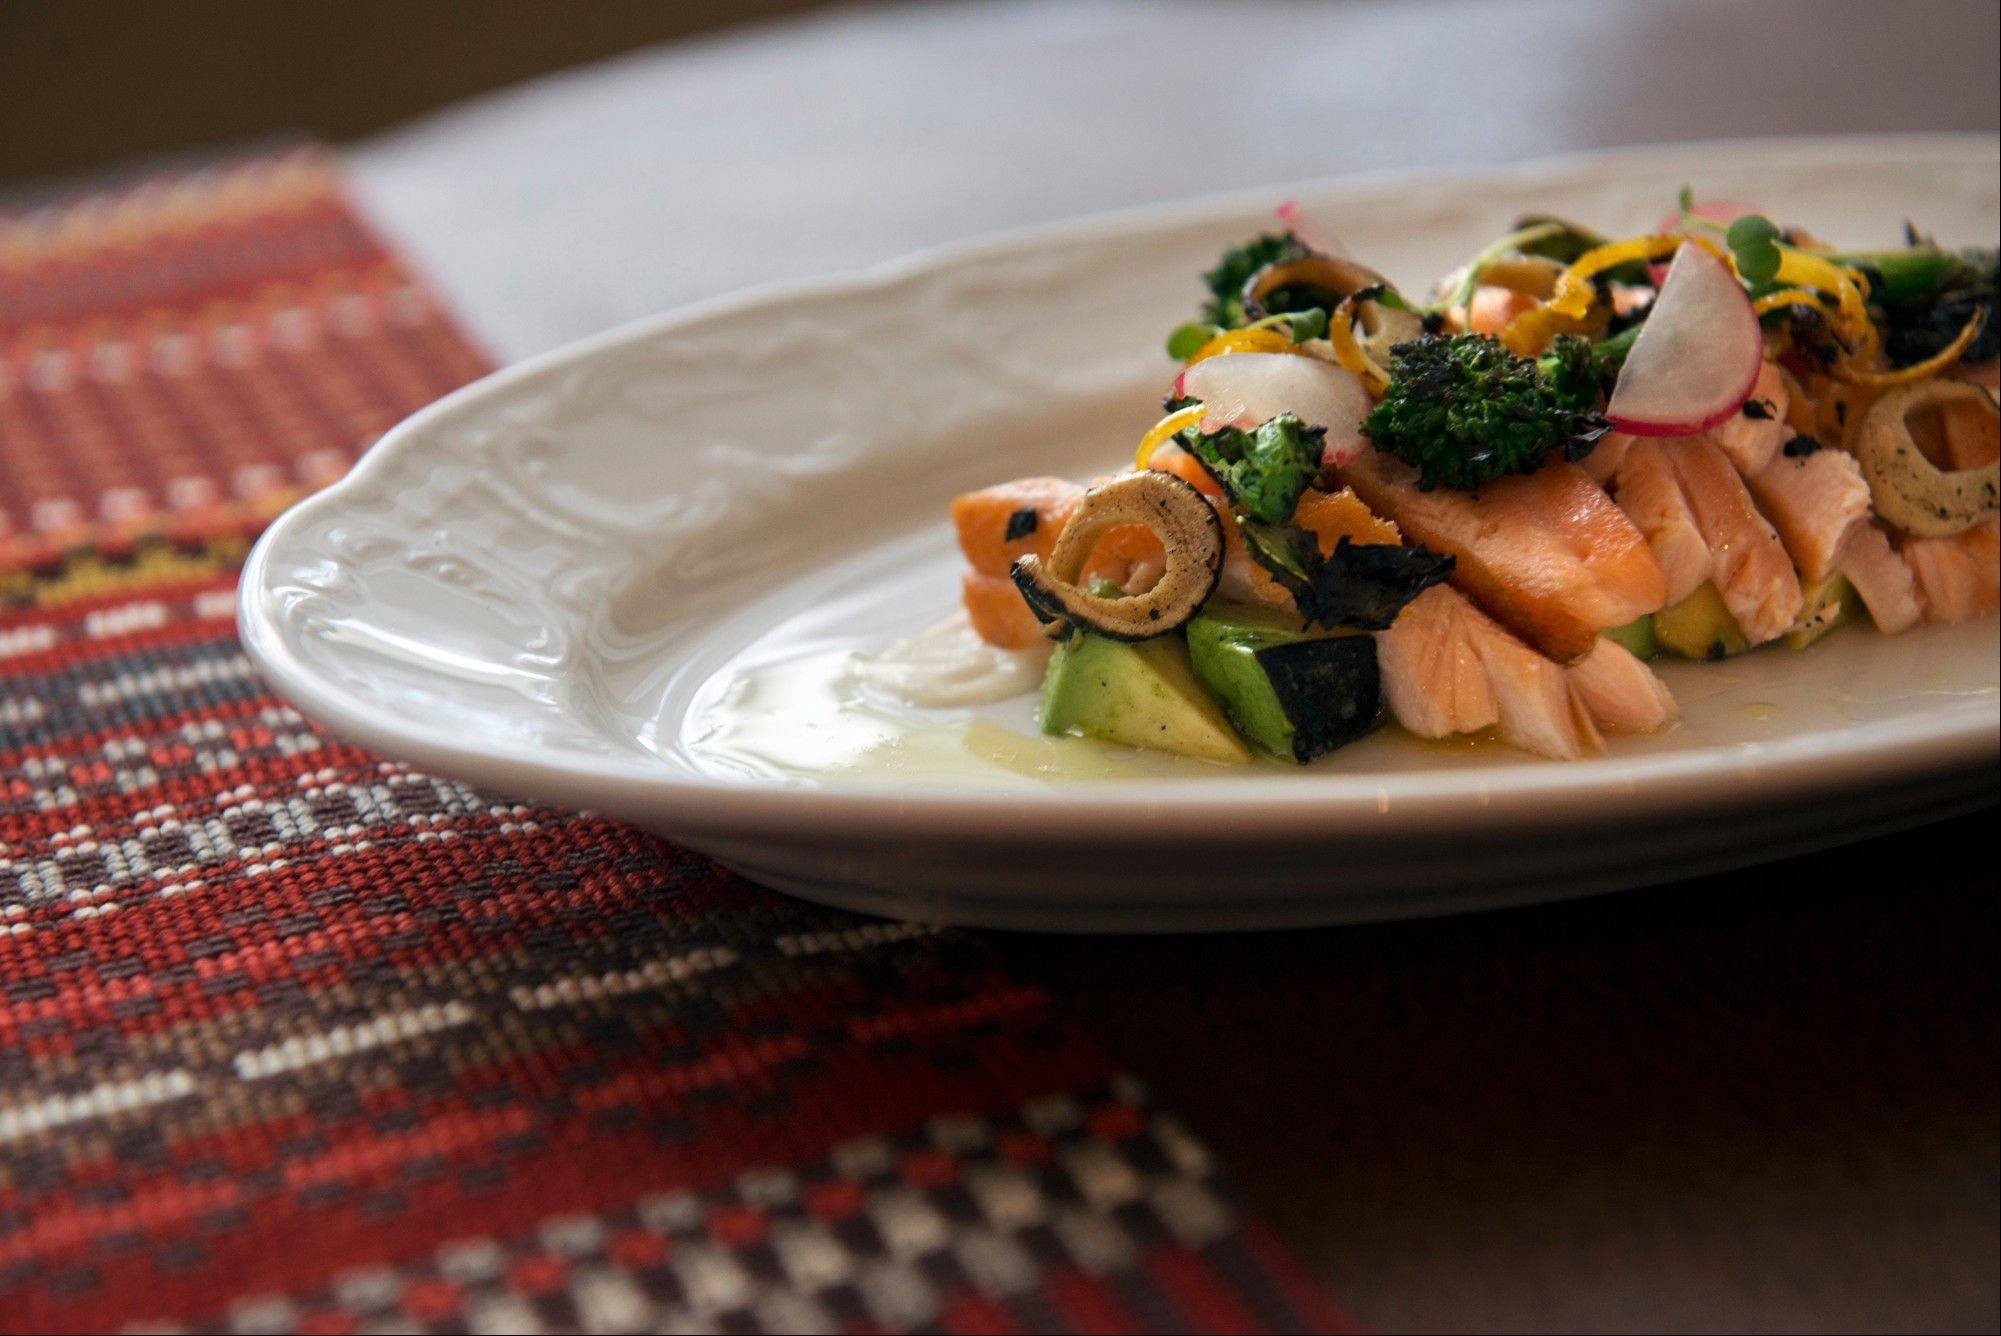 Charred Salmon Crudo with Grilled Avocado and Lemon Aioli showcases the flavors of the grill in a ceviche-style appetizer.